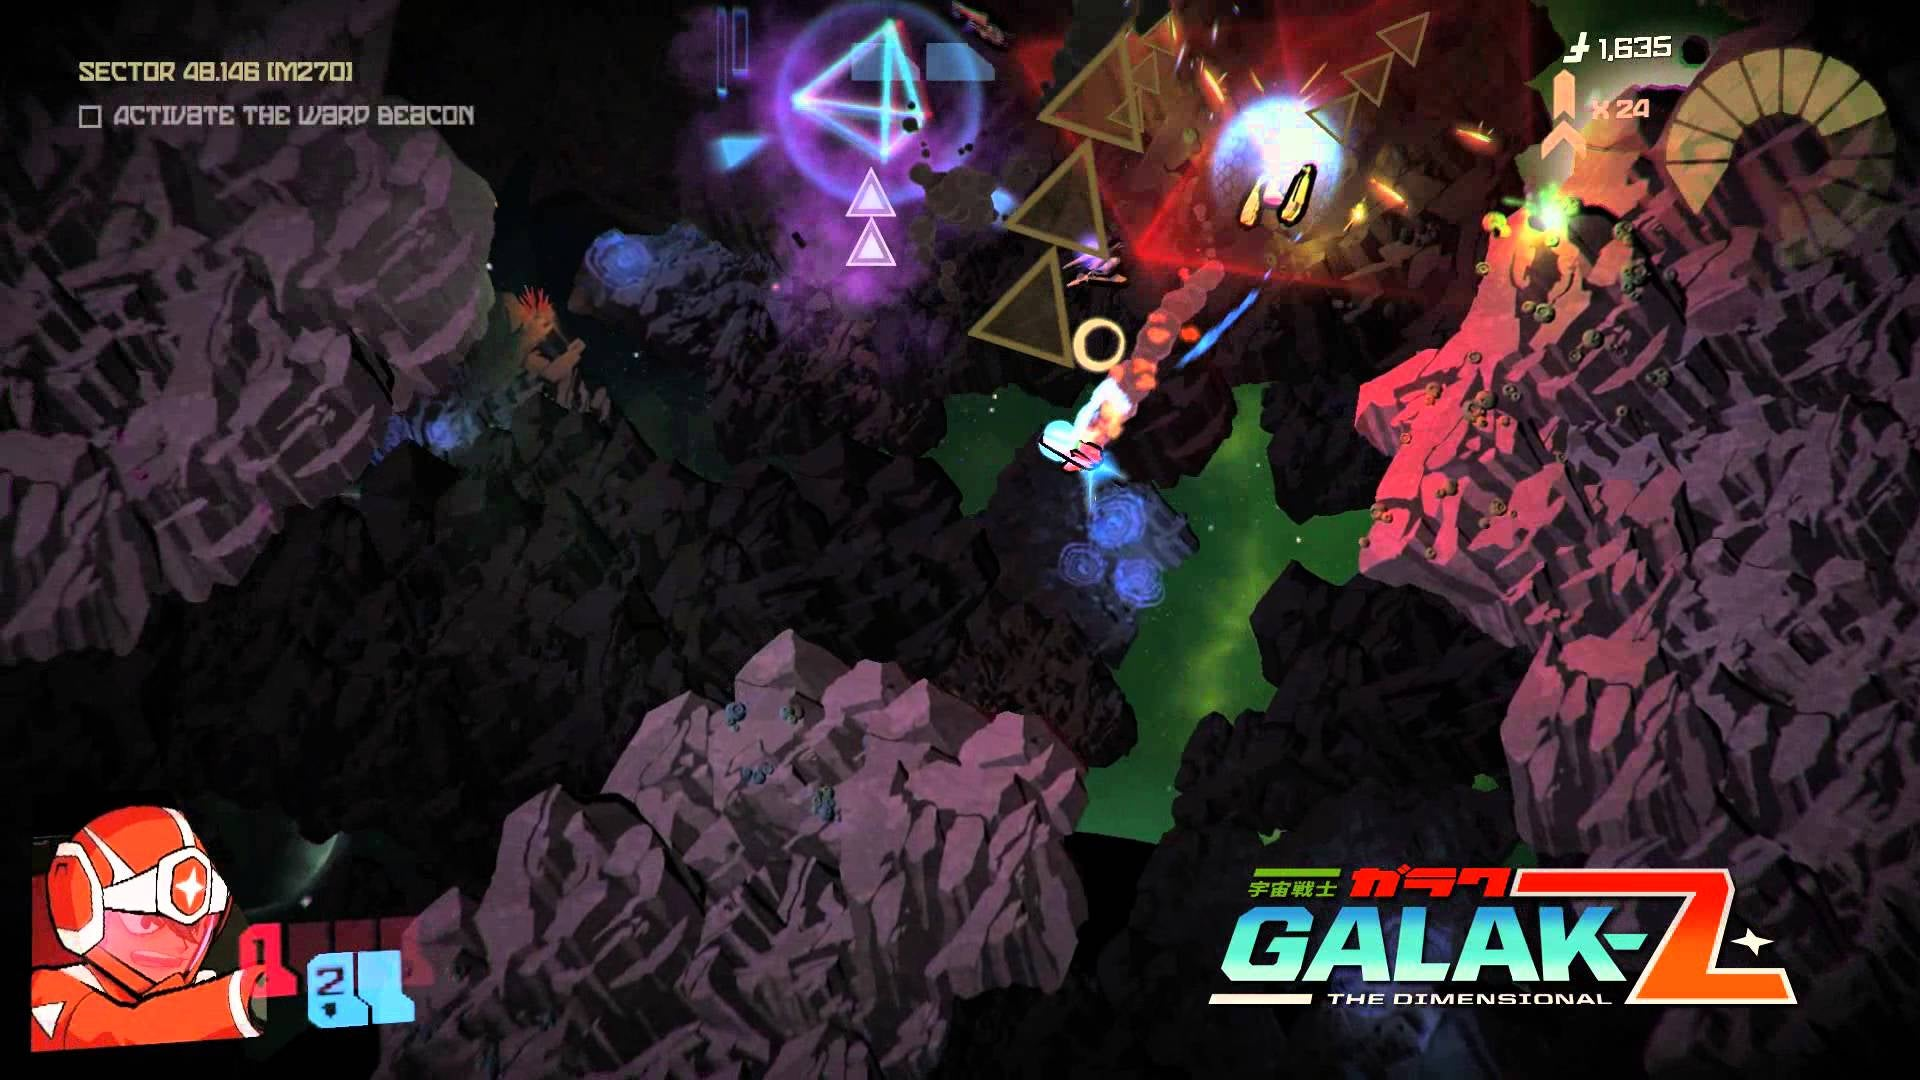 GALAK-Z Finally Hitting Steam Next Week